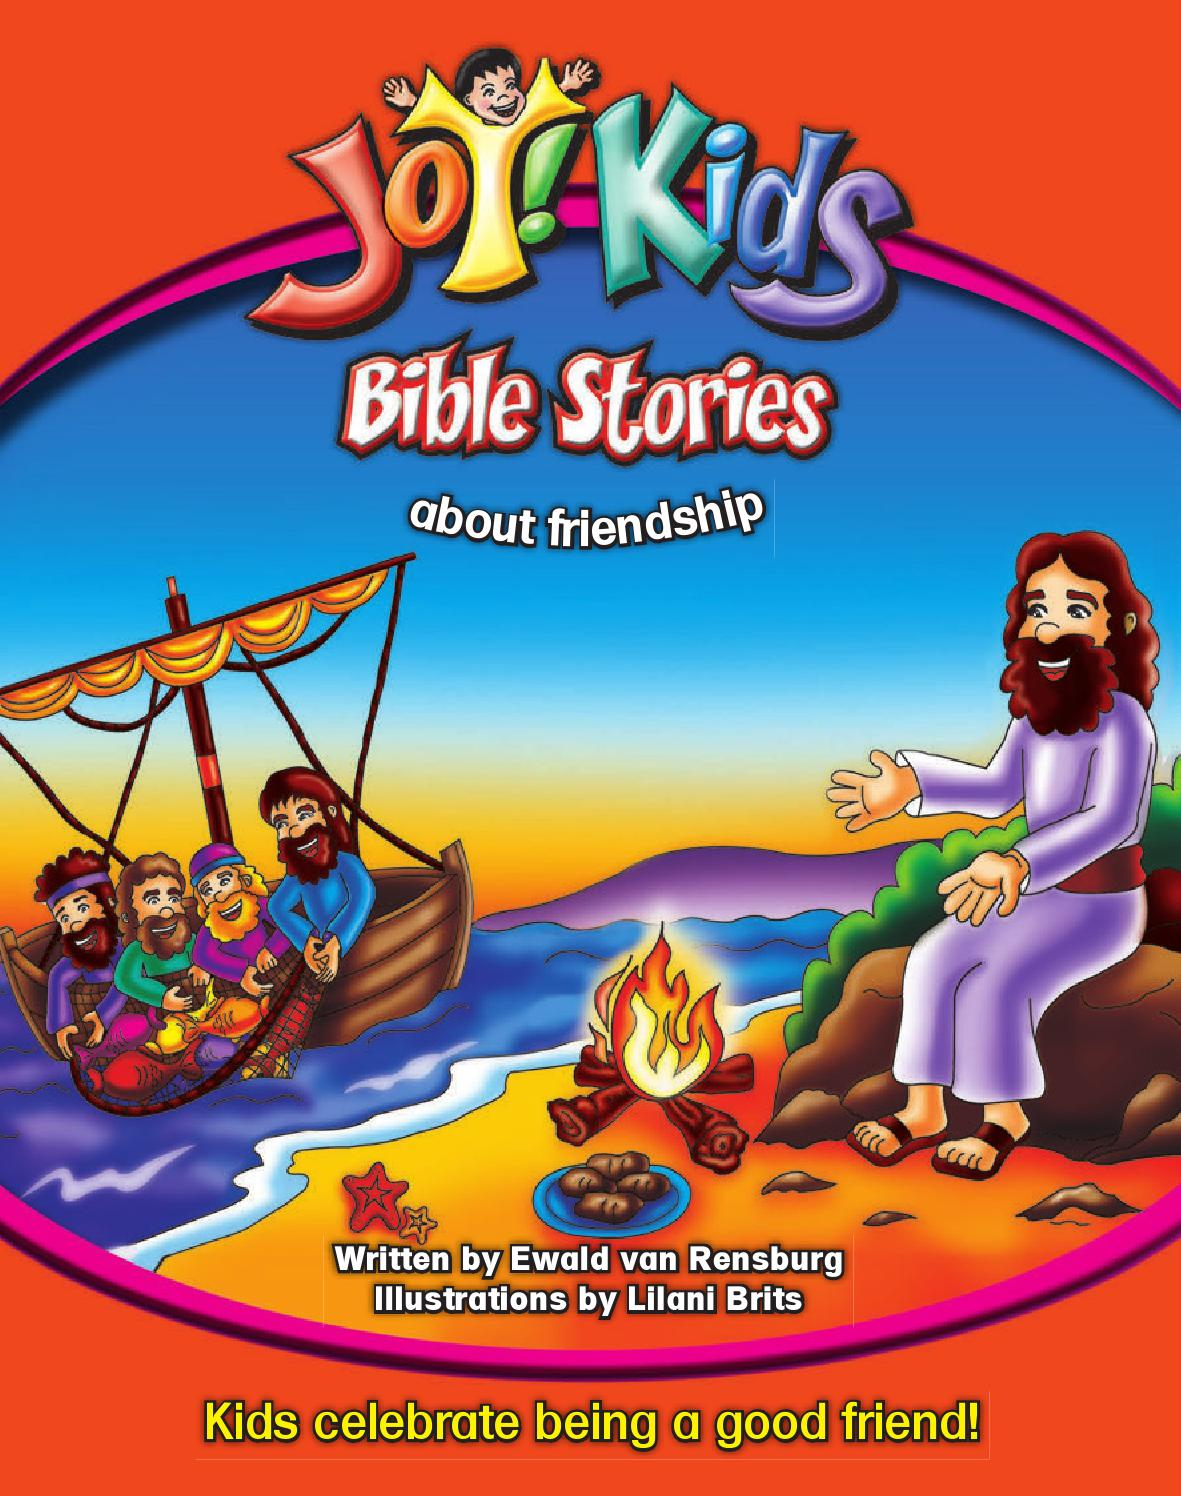 joy kids bible stories about friendship by cmp issuu